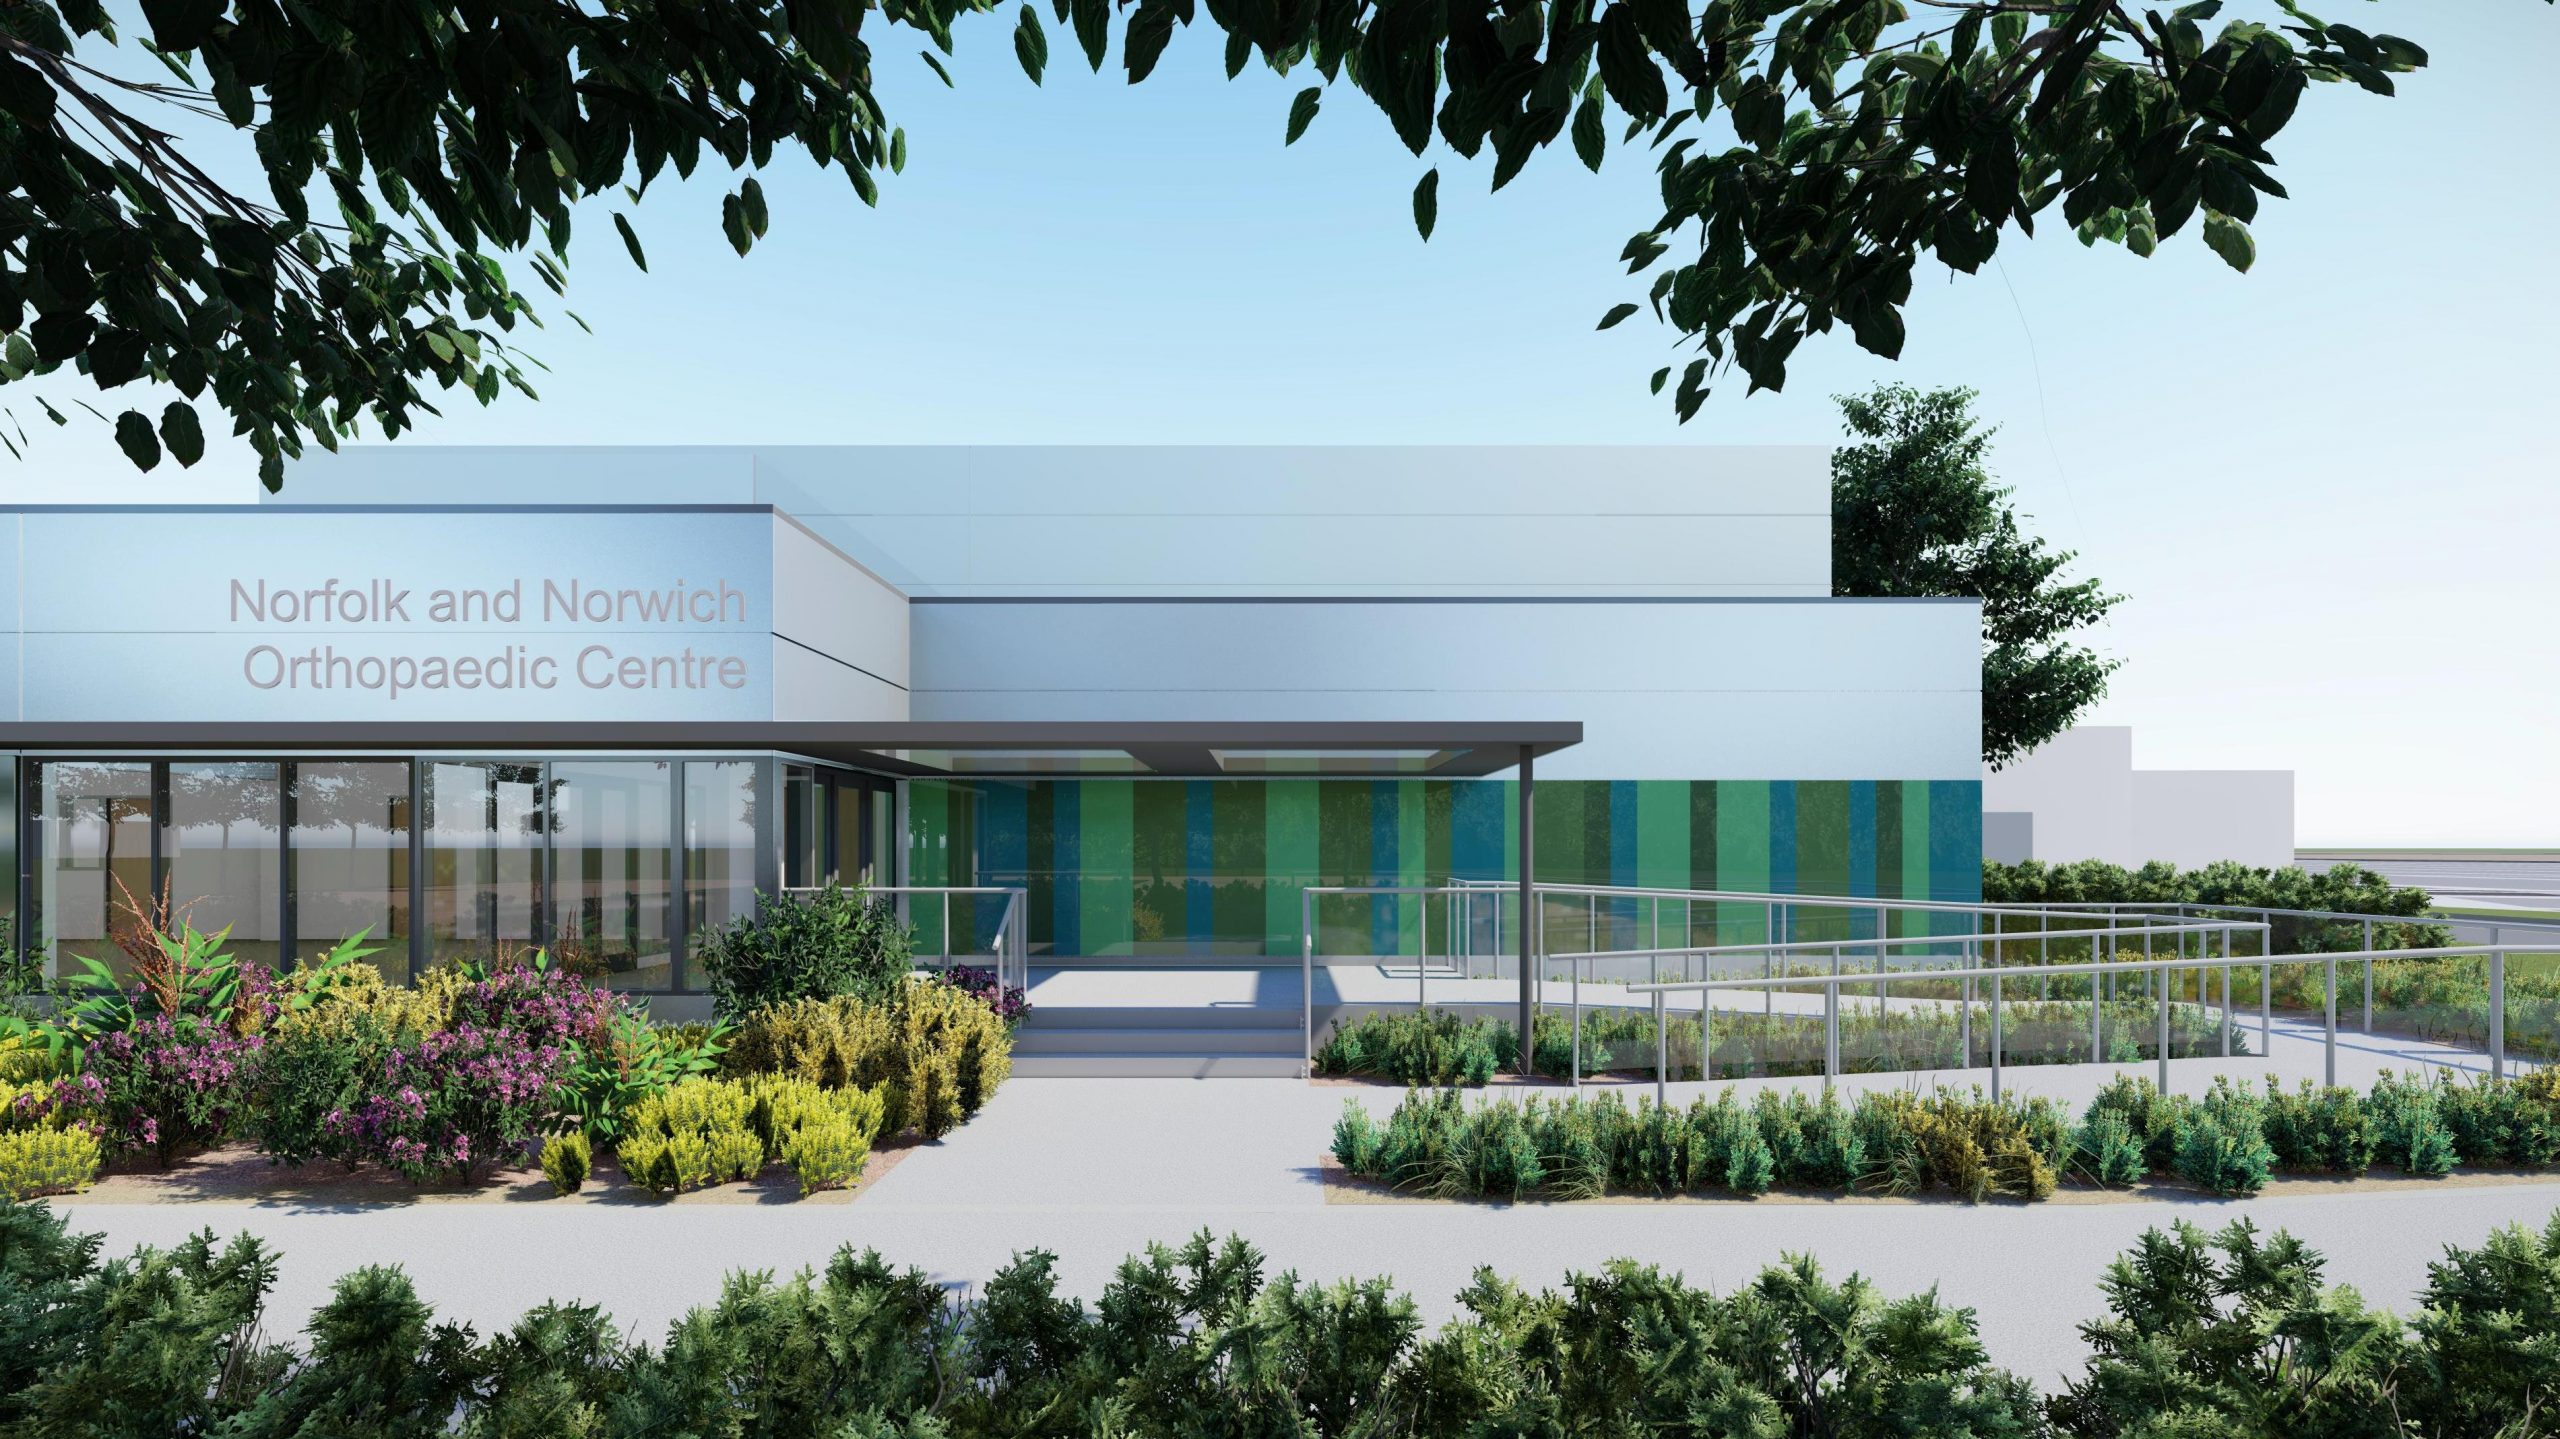 Plans for standalone orthopaedic centre